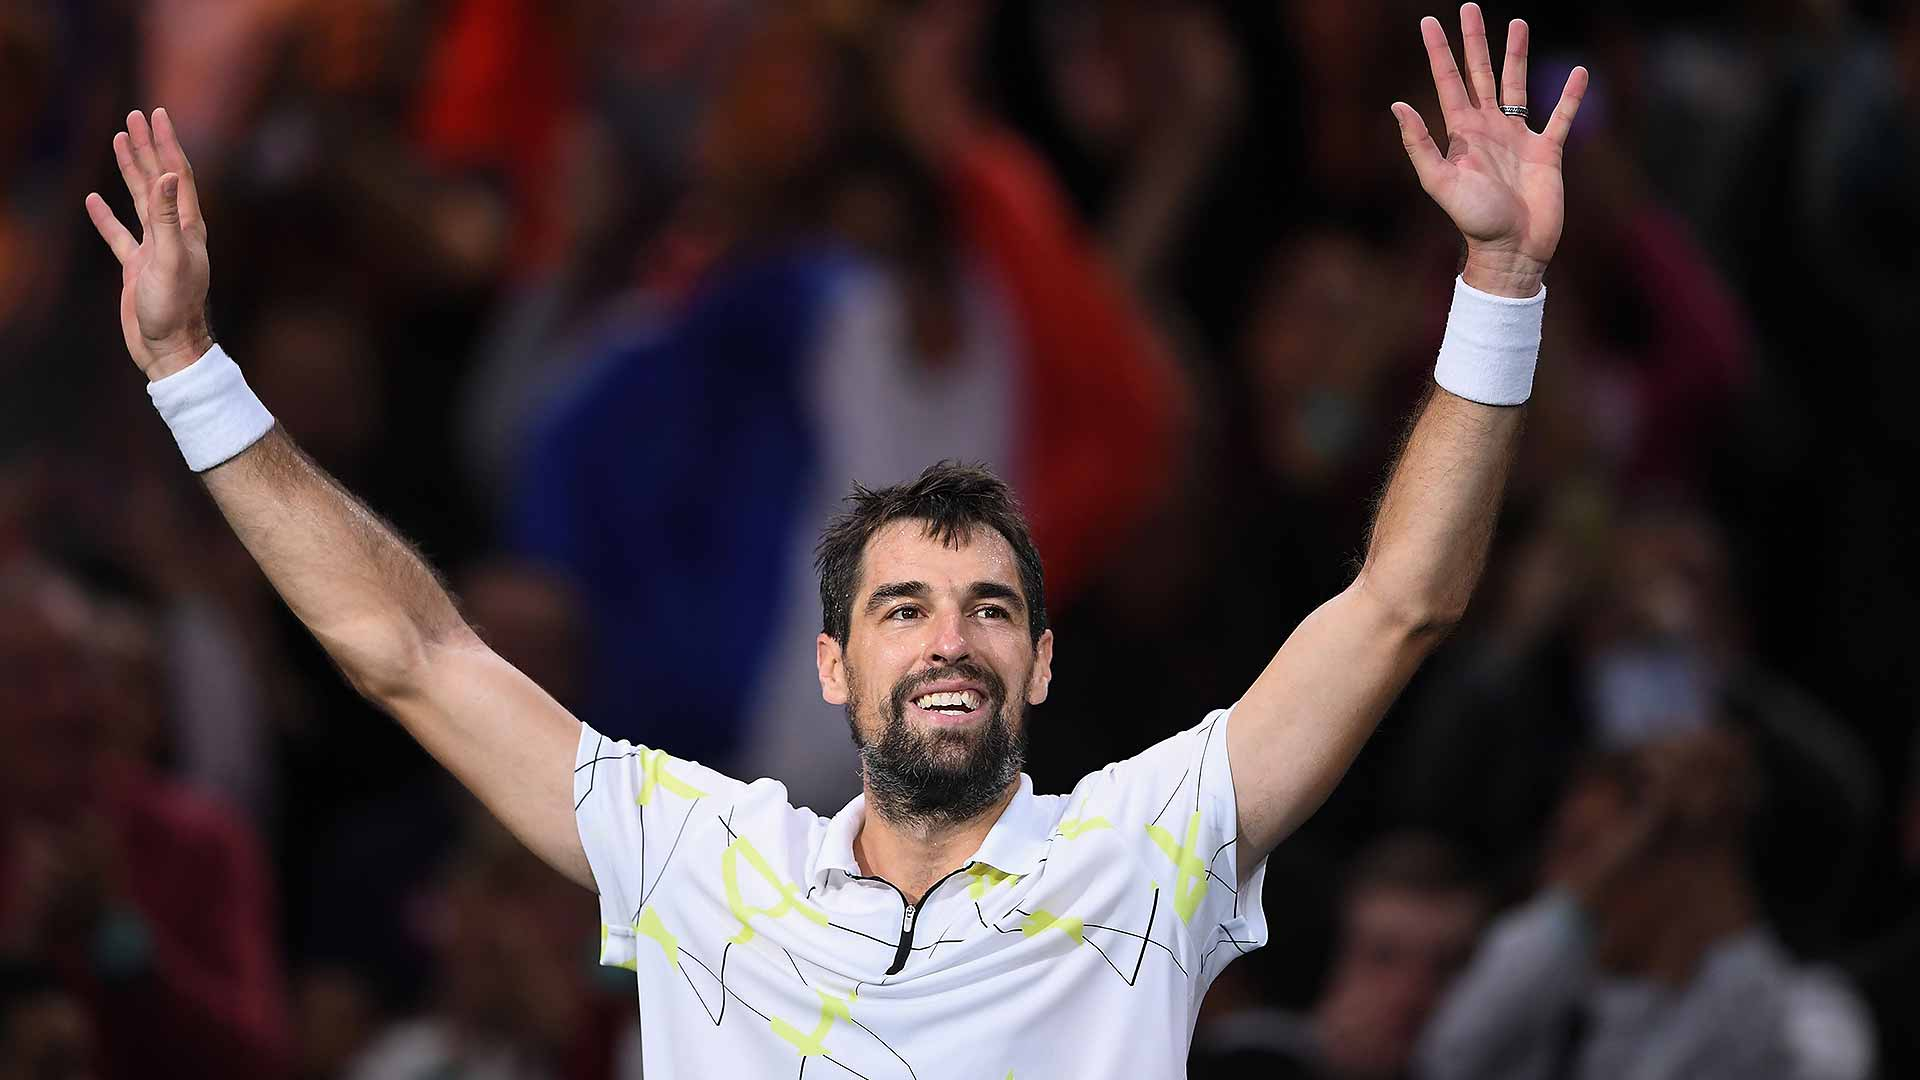 France's Jeremy Chardy picks up his 12th Top 10 win on Tuesday in Paris.